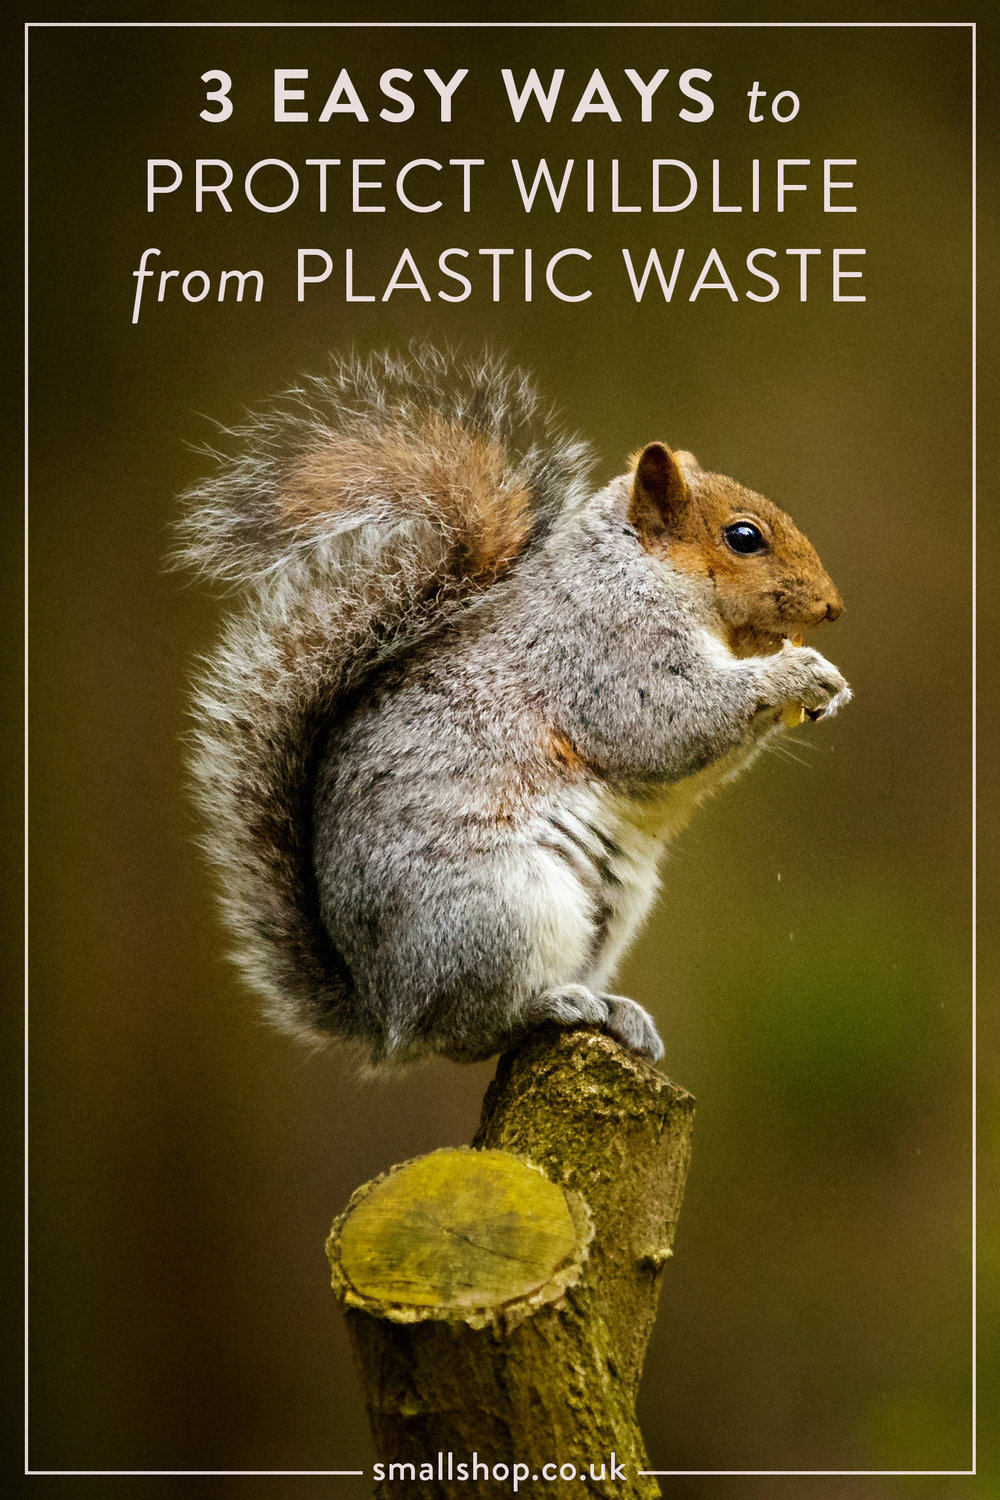 3 Easy Ways to Protect Wildlife from Plastic Waste